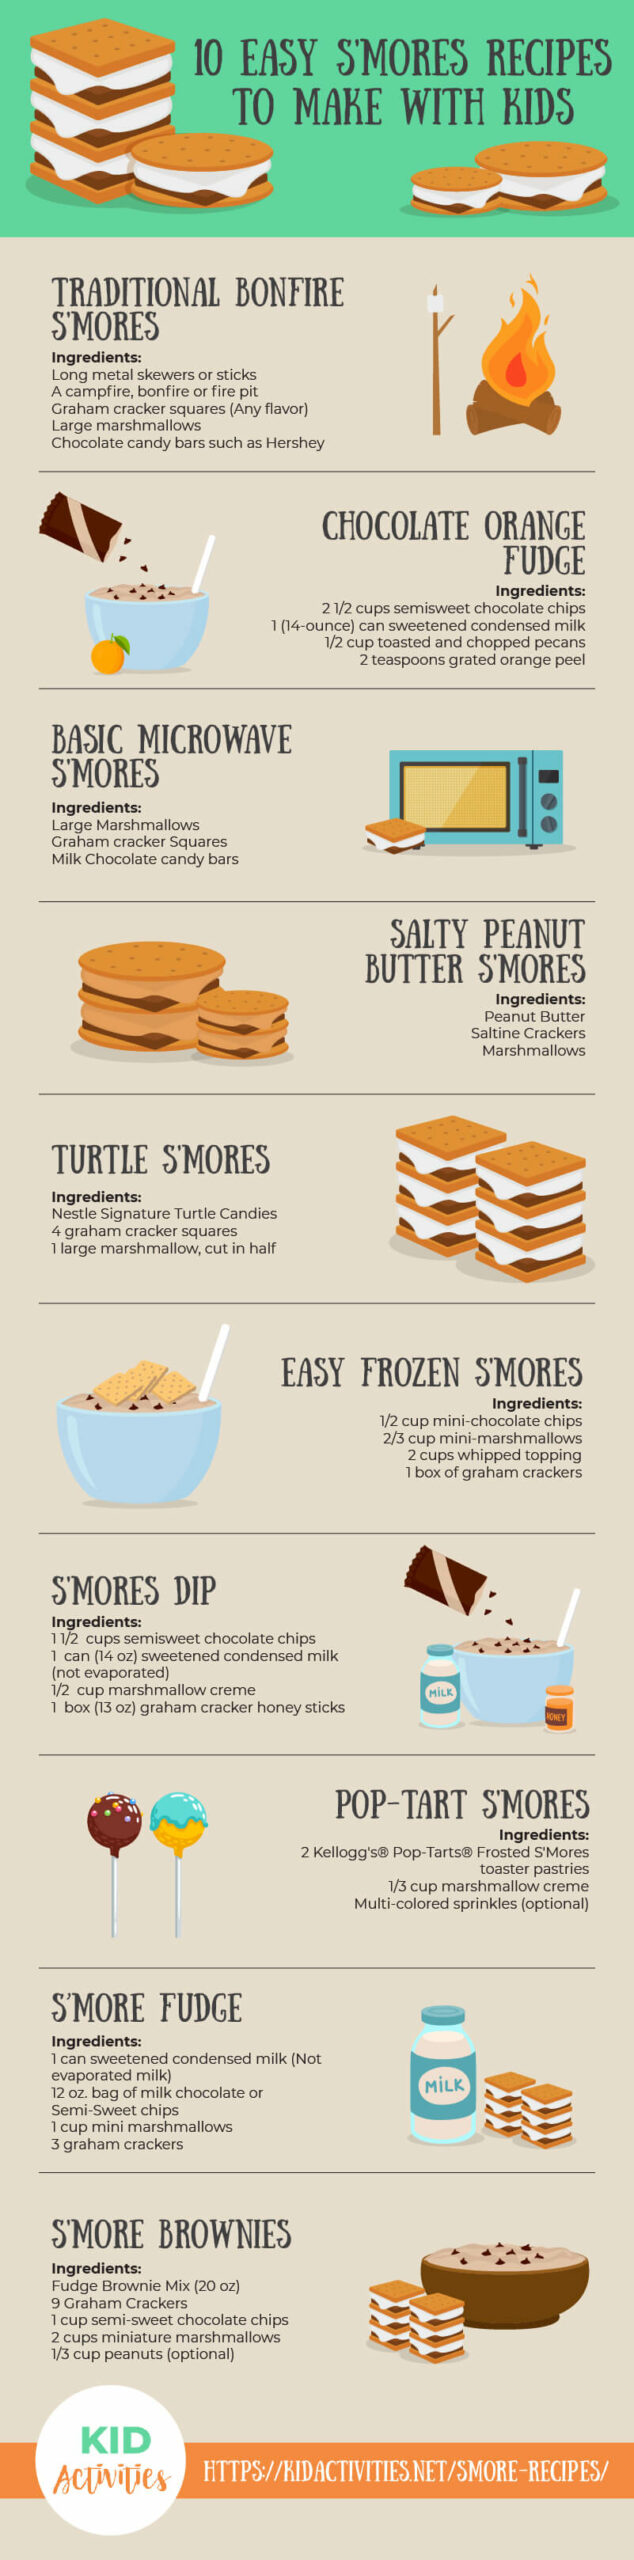 13 easy smore recipes to make with kids